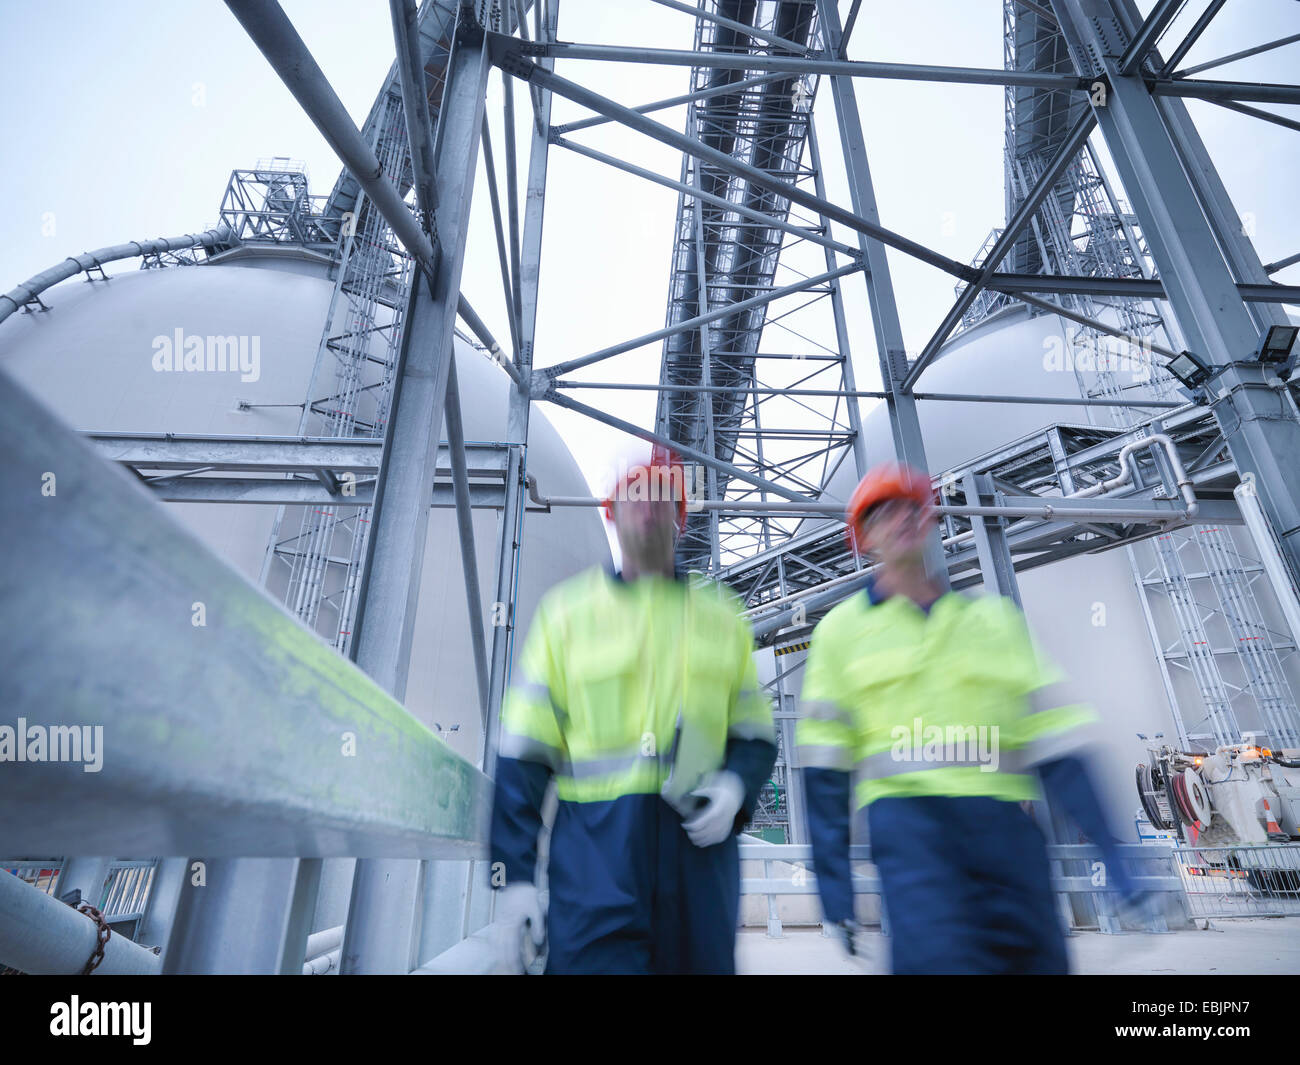 Workers walking towards camera at biomass facility Stock Photo